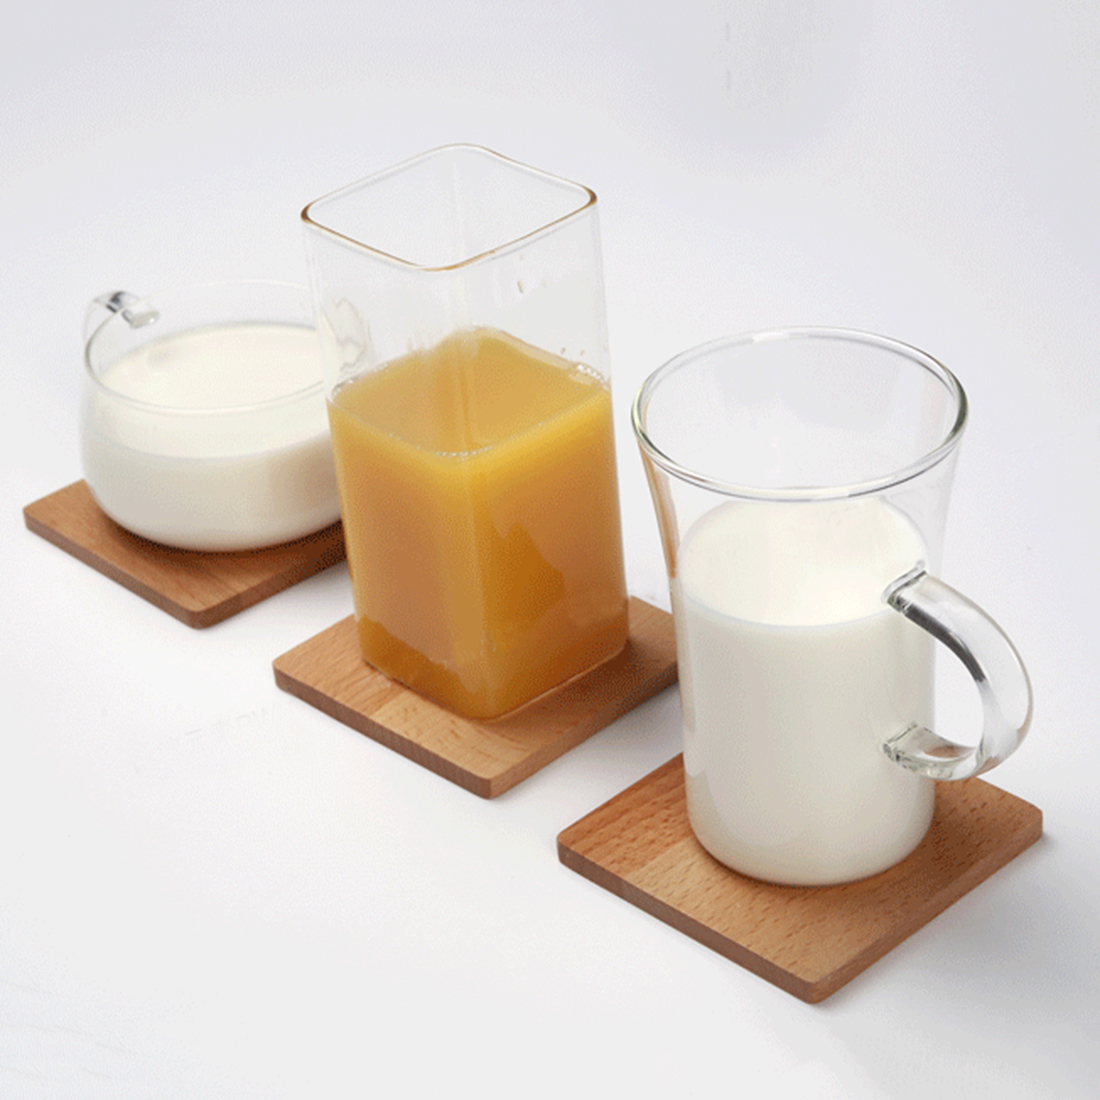 Eshow 1pcs Japanese Style Heat Resistent Placemat Beech Coasters Square  Shape Solid Wood Cup Mat Table Mat Home Bar Tool